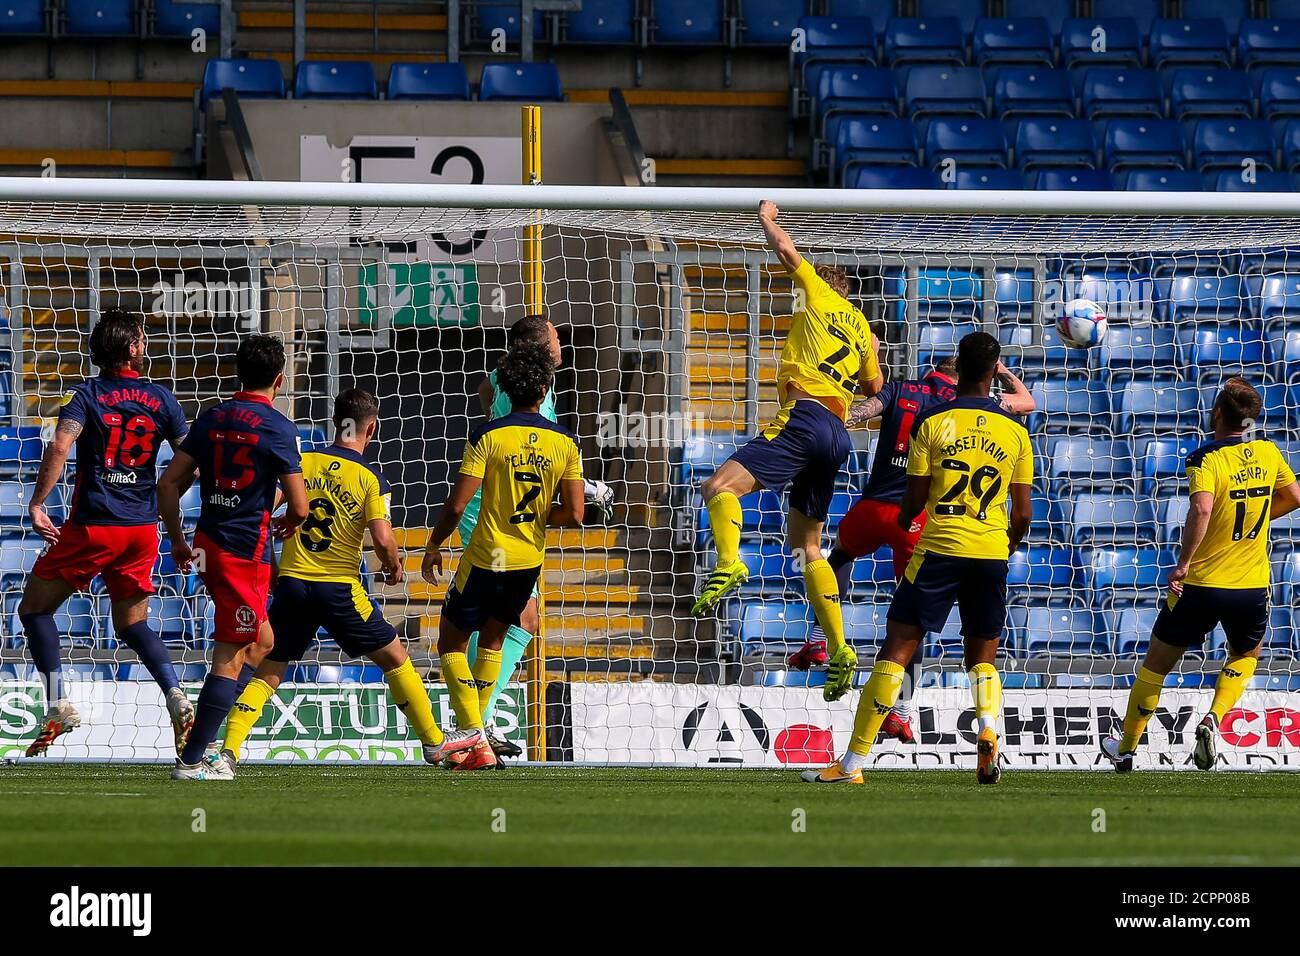 Oxford, UK. 19th Sep, 2020. The visitors with an early attack during the Sky Bet League 1 behind closed doors match between Oxford United and Sunderland at the Kassam Stadium, Oxford, England on 19 September 2020. Photo by Nick Browning/PRiME Media Images. Credit: PRiME Media Images/Alamy Live News Stock Photo